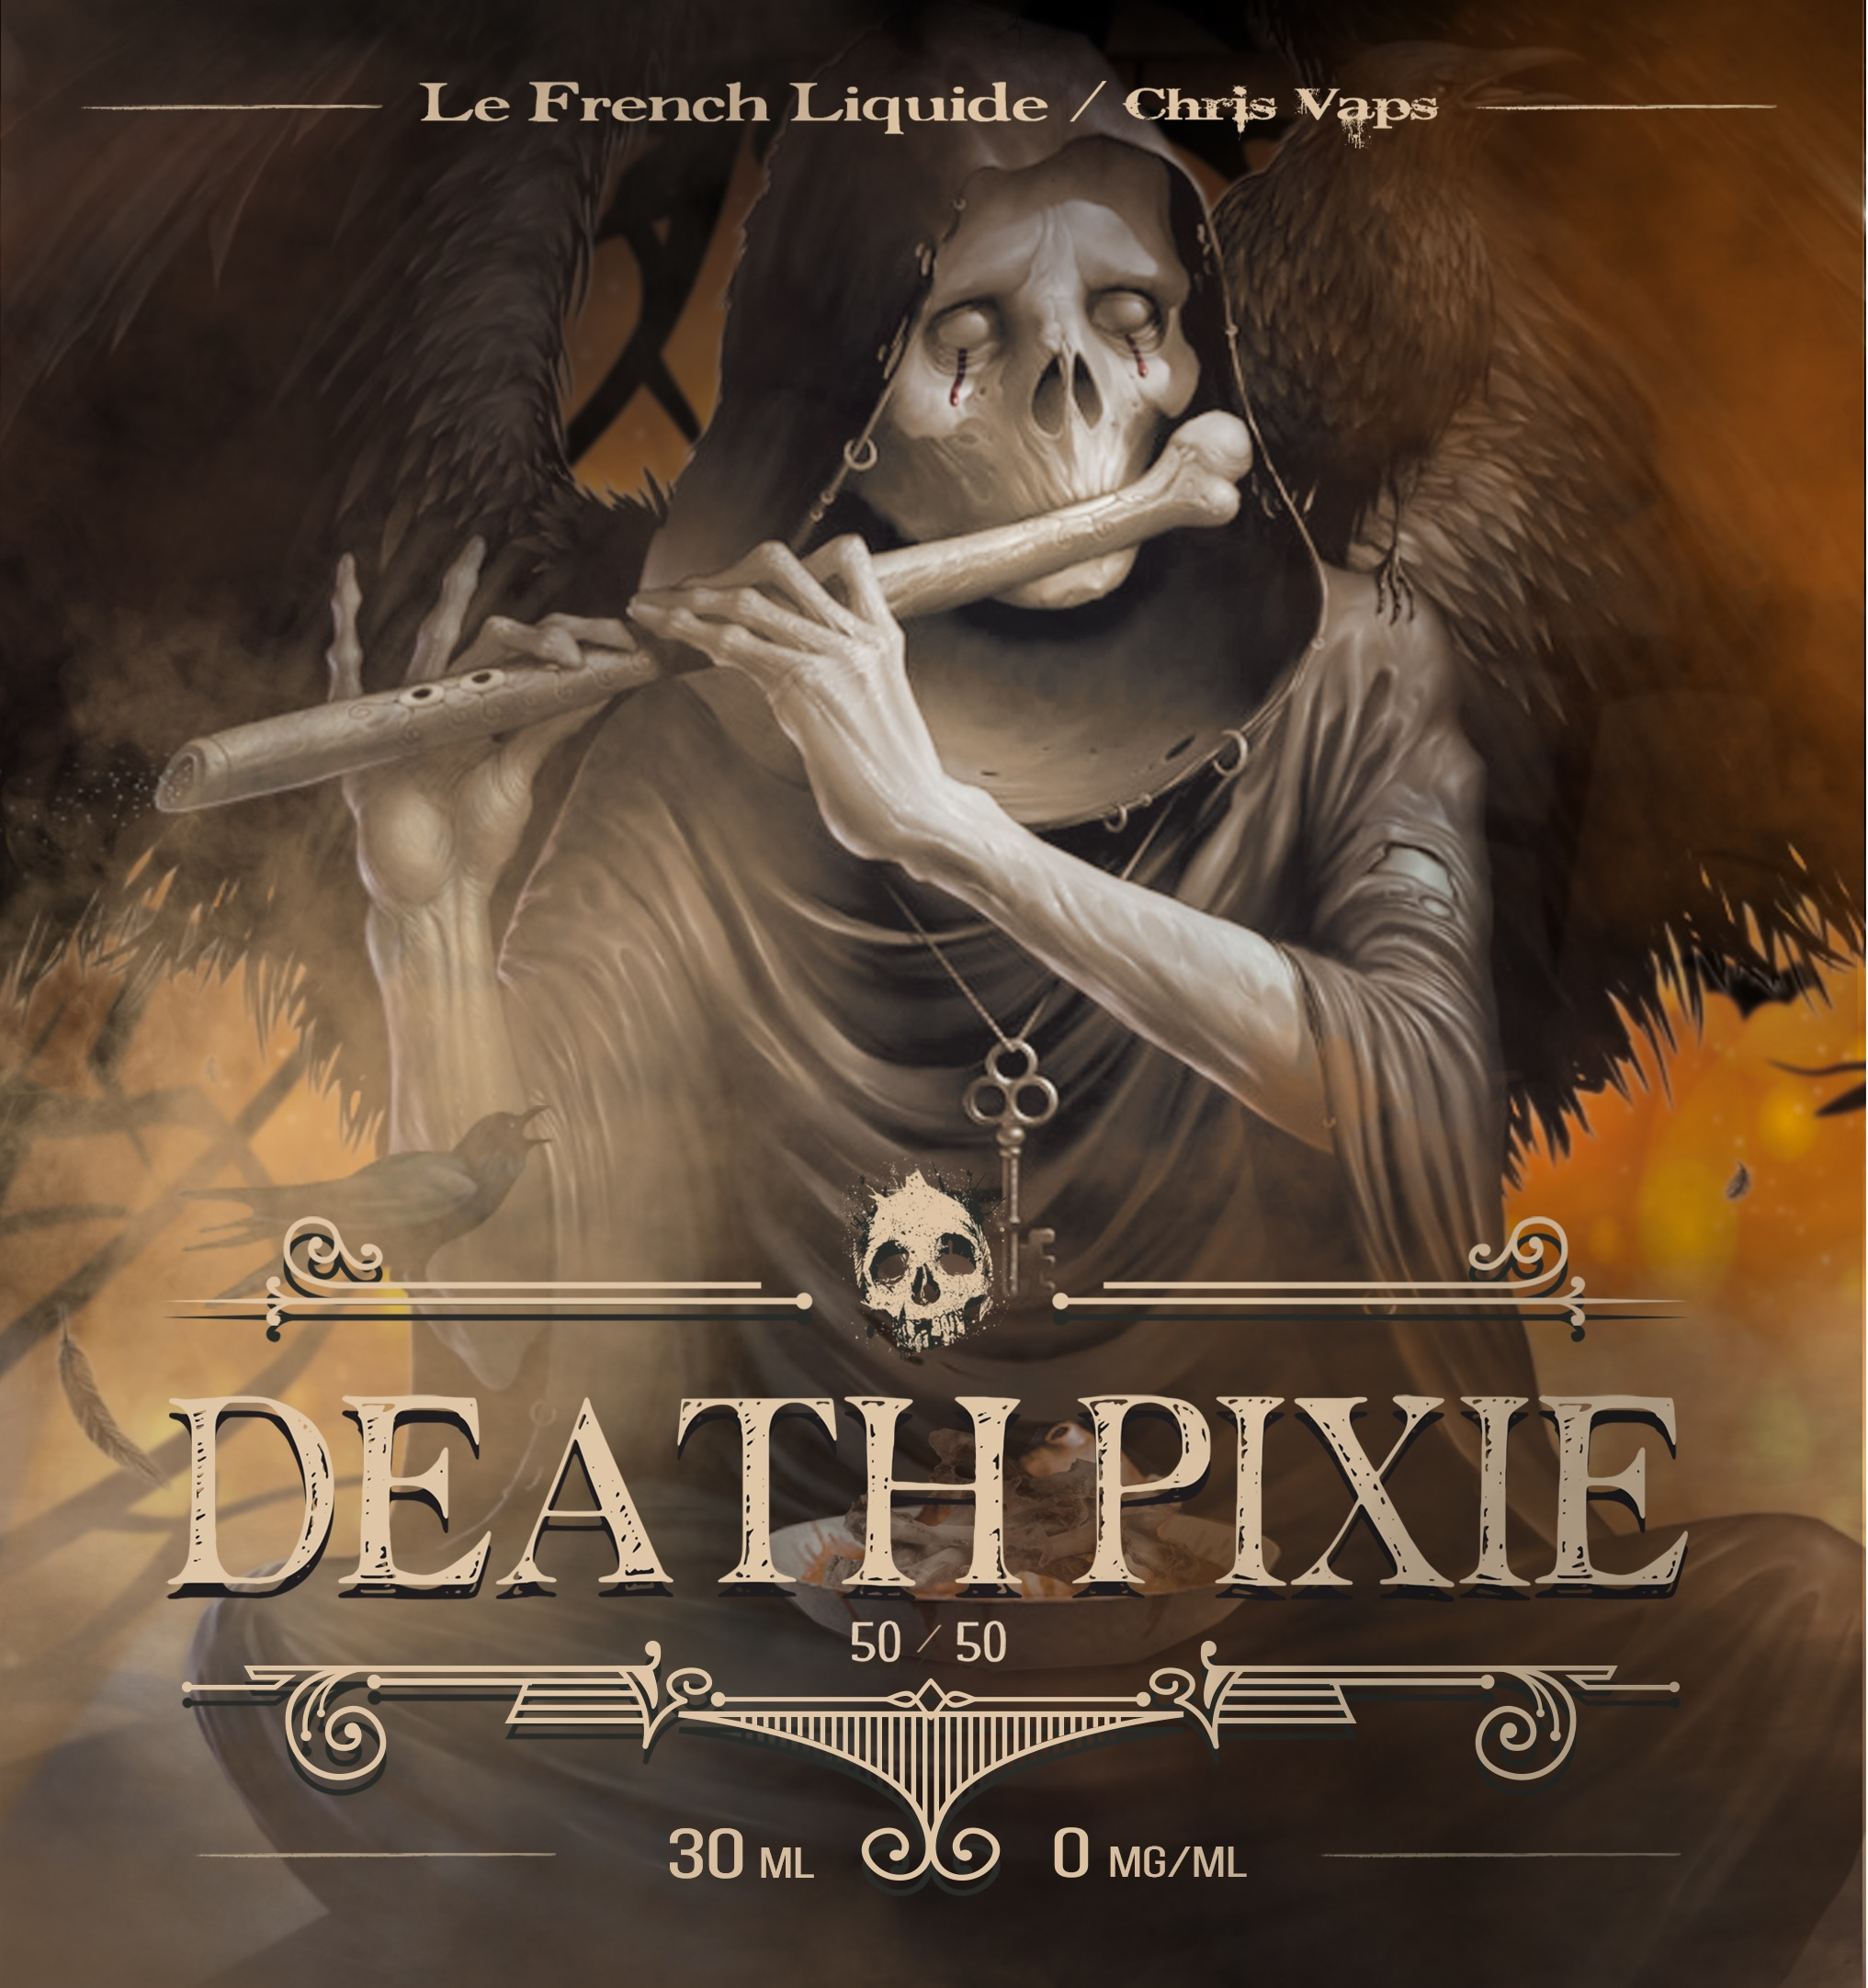 10 ml Le French Liquide Death Pixie 3 mg/ml